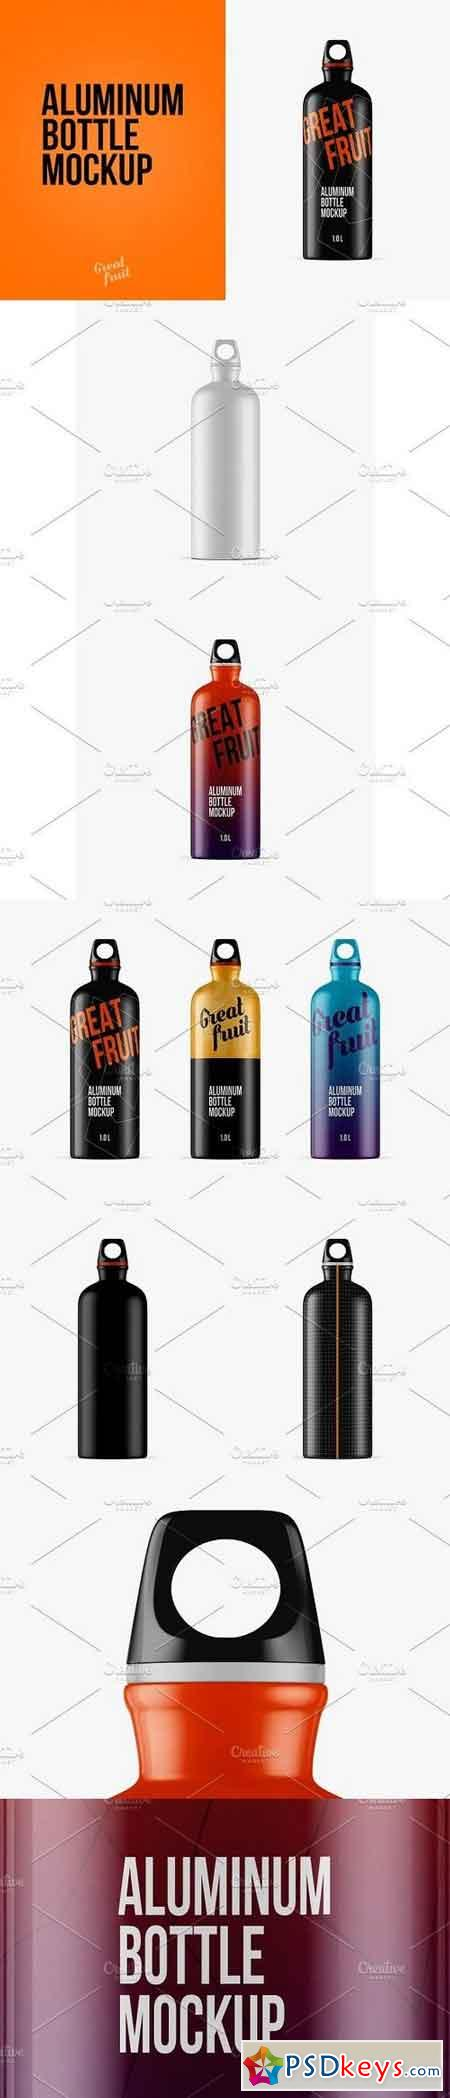 Aluminum Water Bottle PSD Mockup 1339031